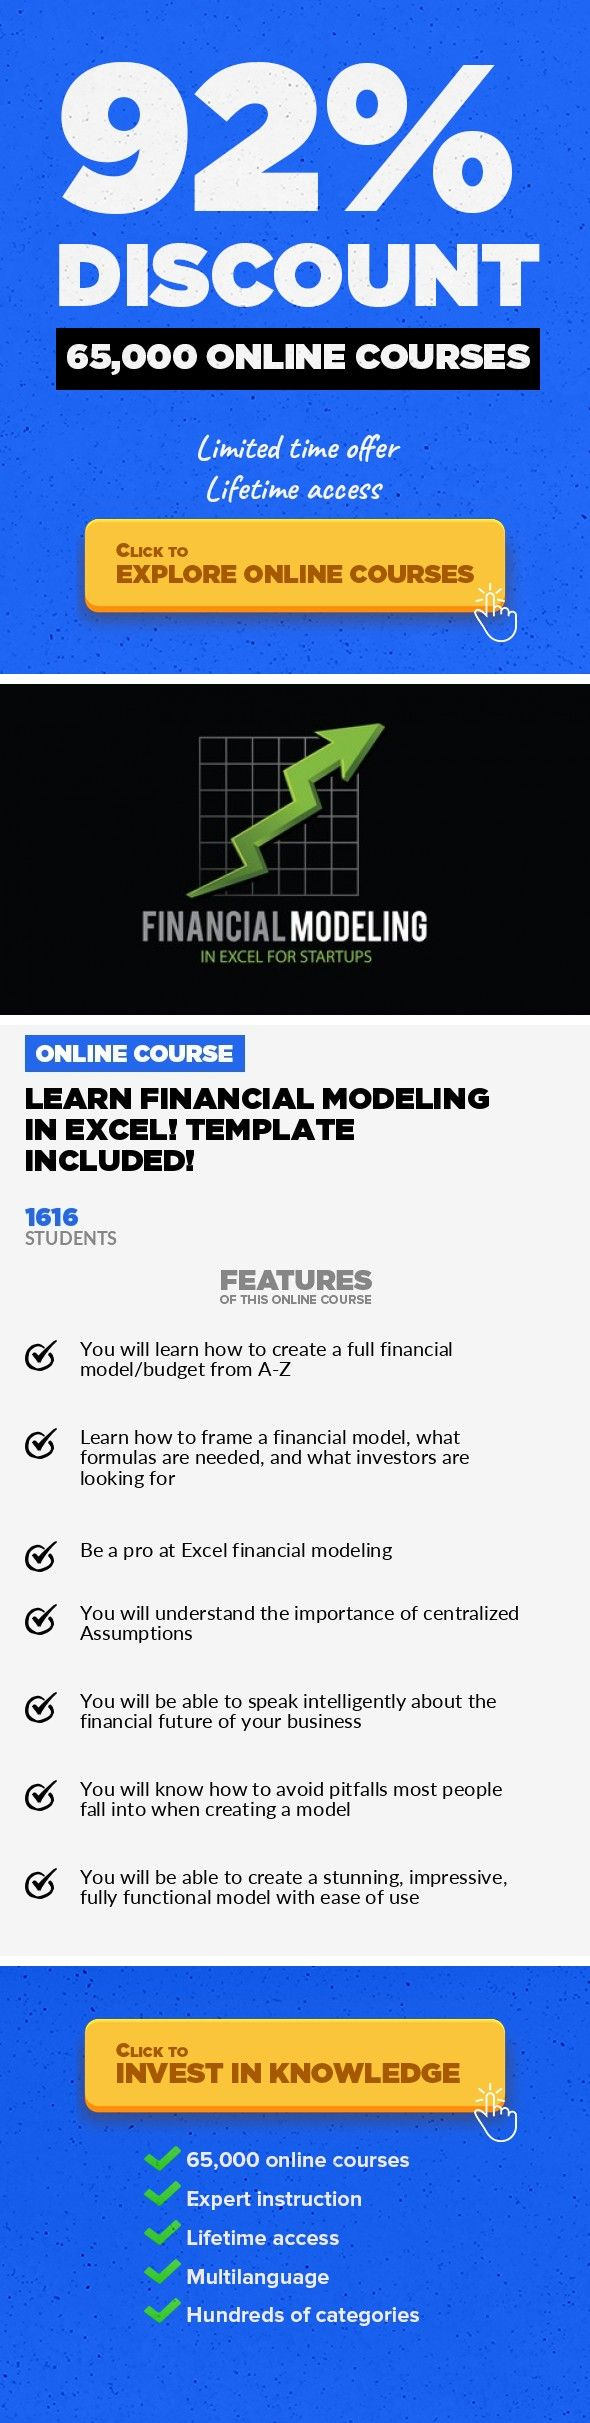 How Do I Make A Profit And Loss Statement Alluring Learn Financial Modeling In Excel Template Included Finance .